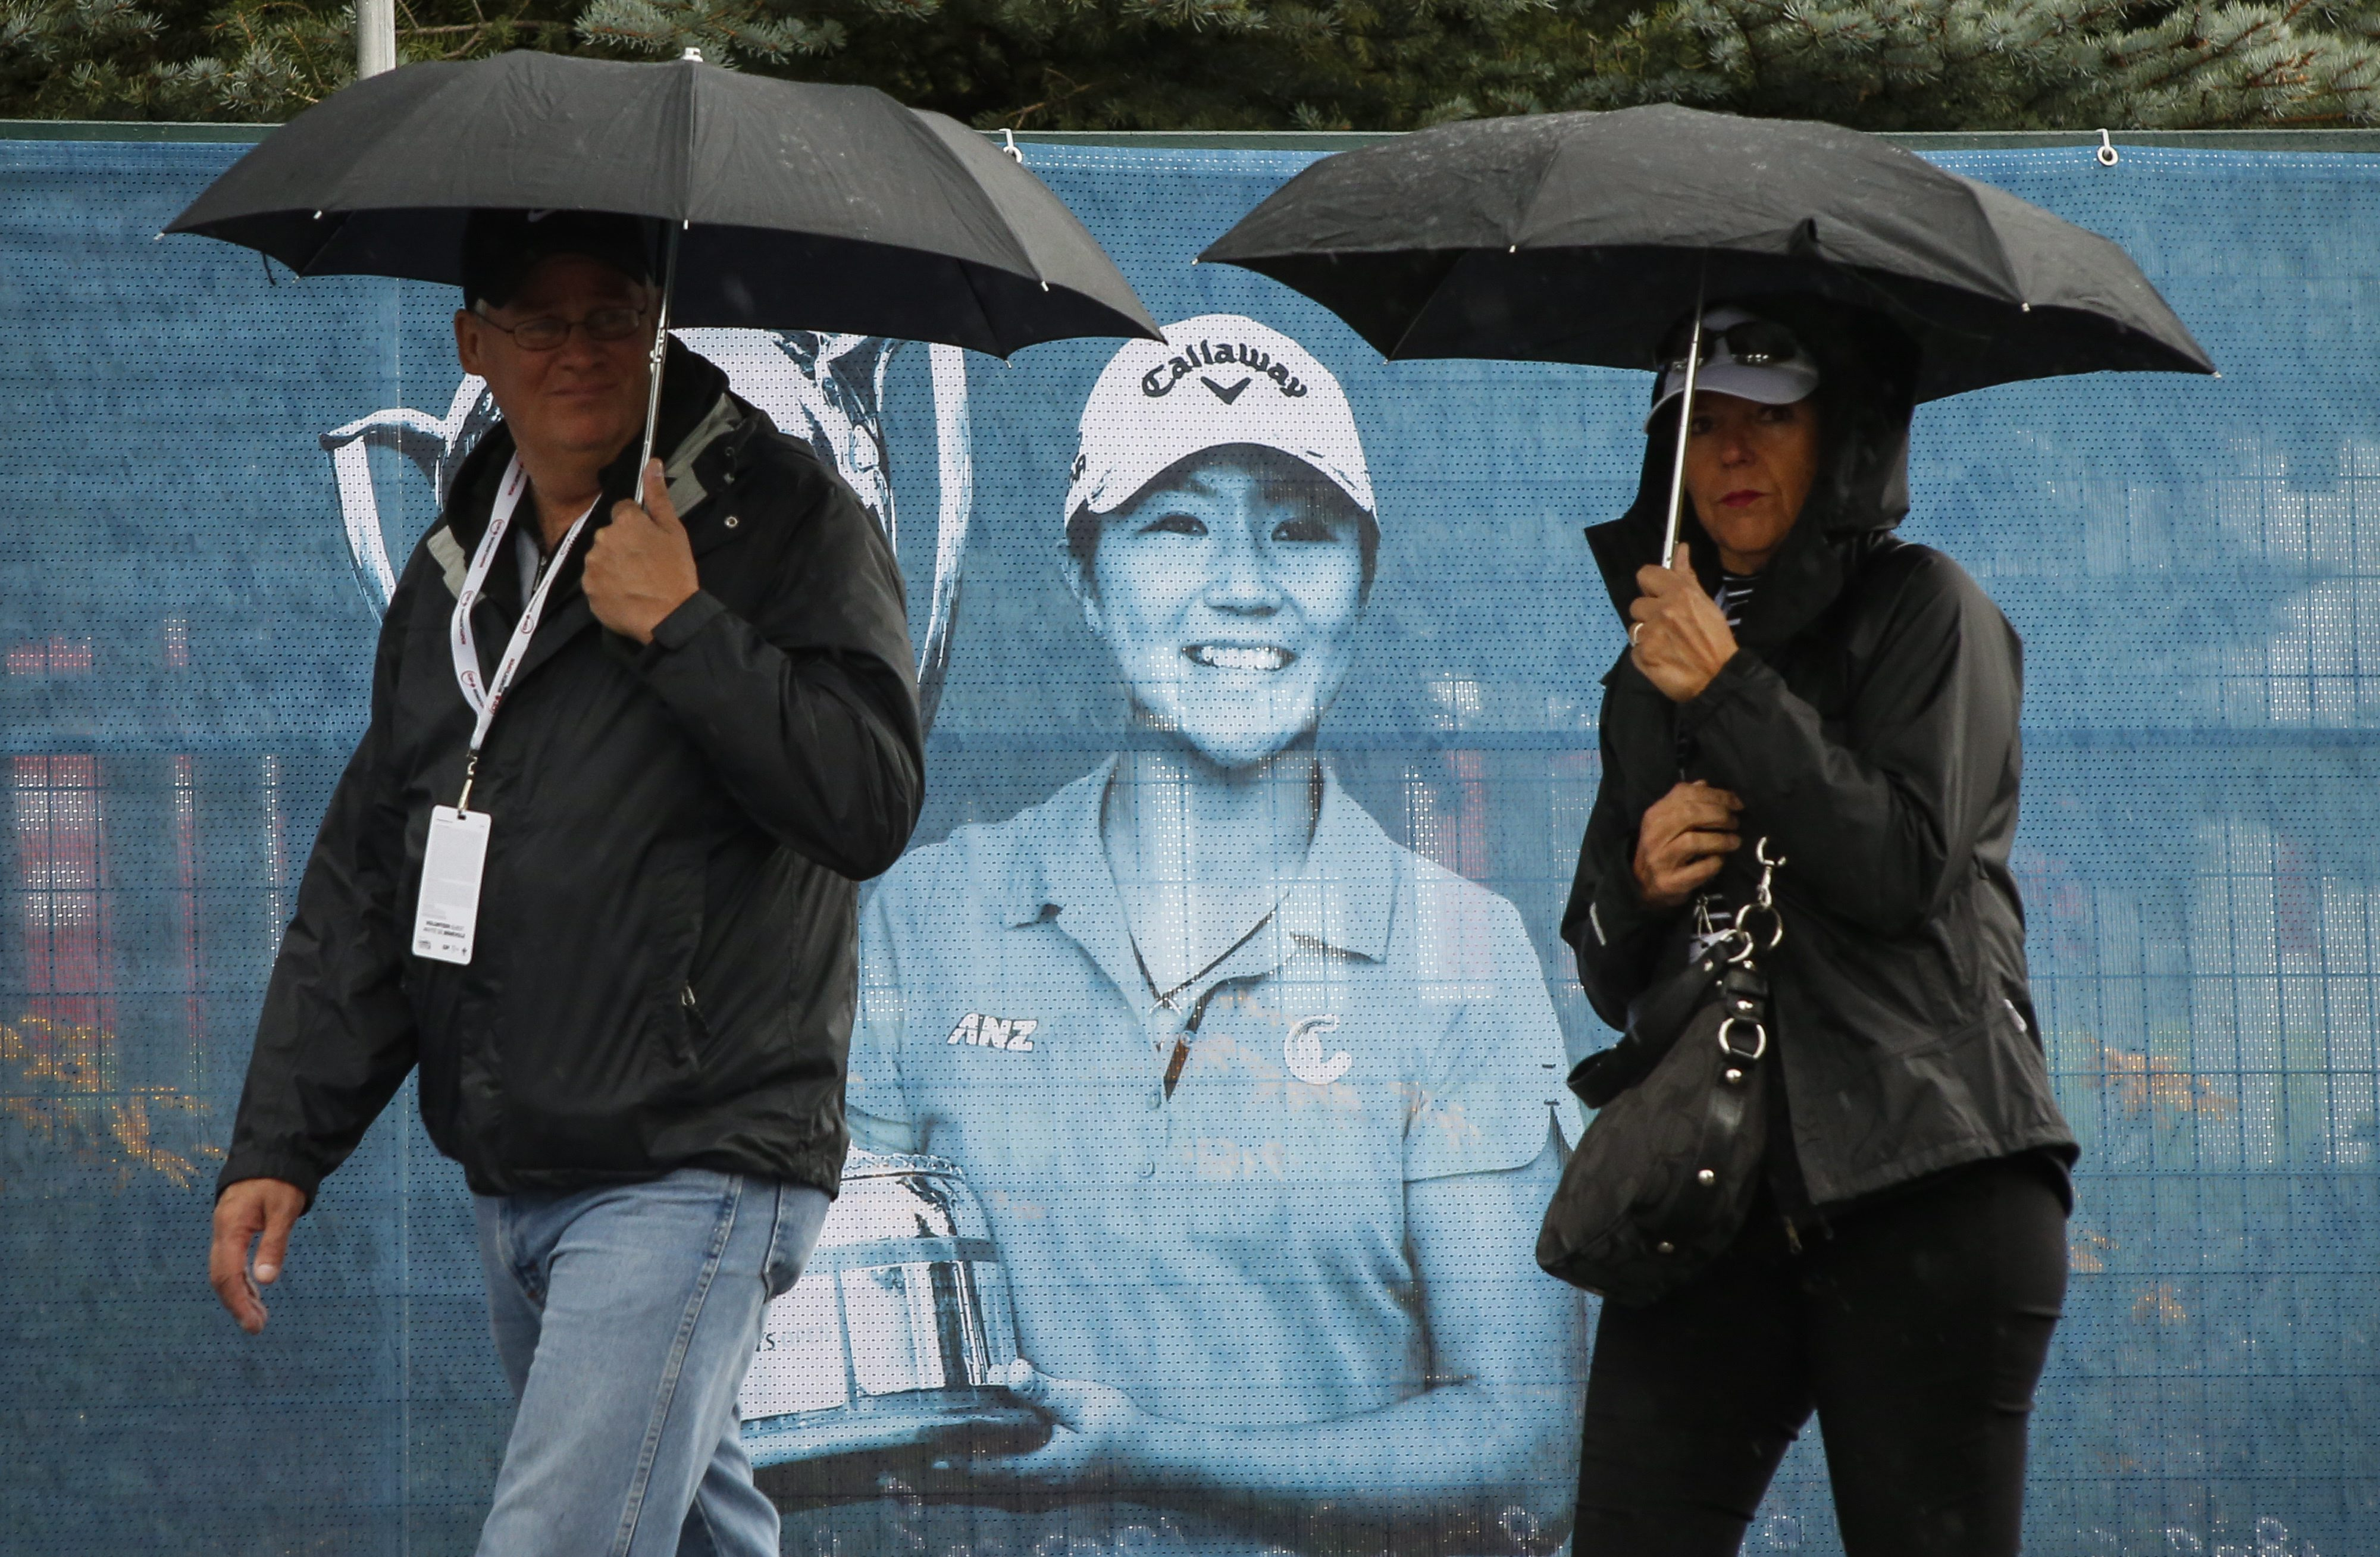 Fans walk past a banner of 2015 Canadian Open winner New Zealand's Lydia Ko during a weather delay in the first round of the Canadian Pacific Women's Open golf tournament in Priddis, Alberta, Thursday, Aug. 25, 2016. (Jeff McIntosh/The Canadian press via